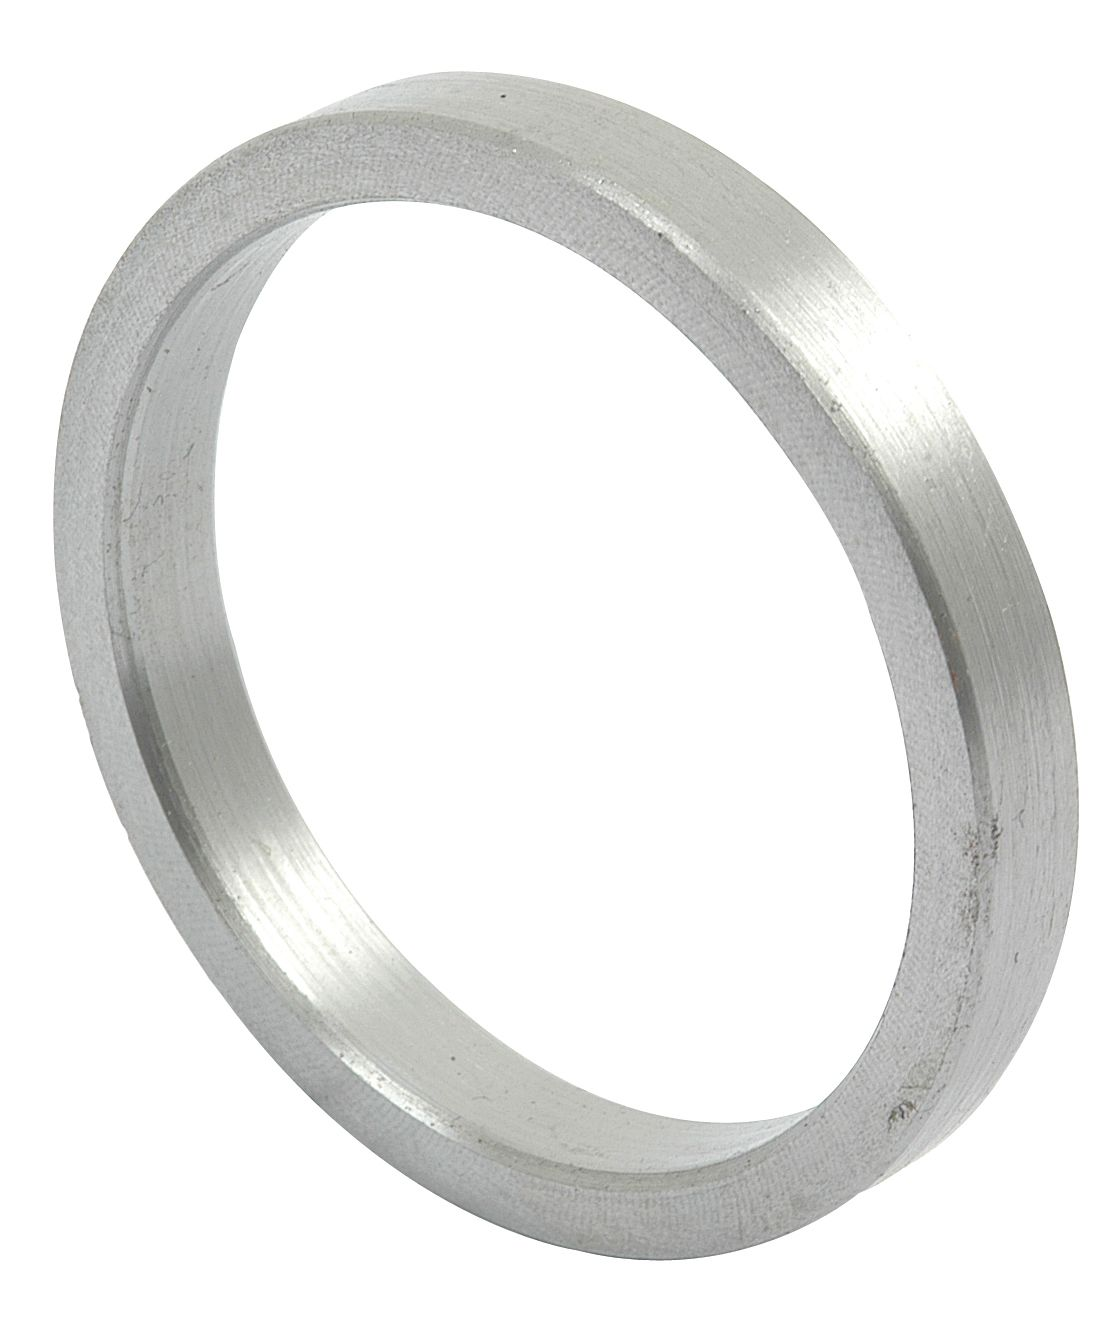 WHITE/OLIVER CROSS SHAFT-SPACER 59119